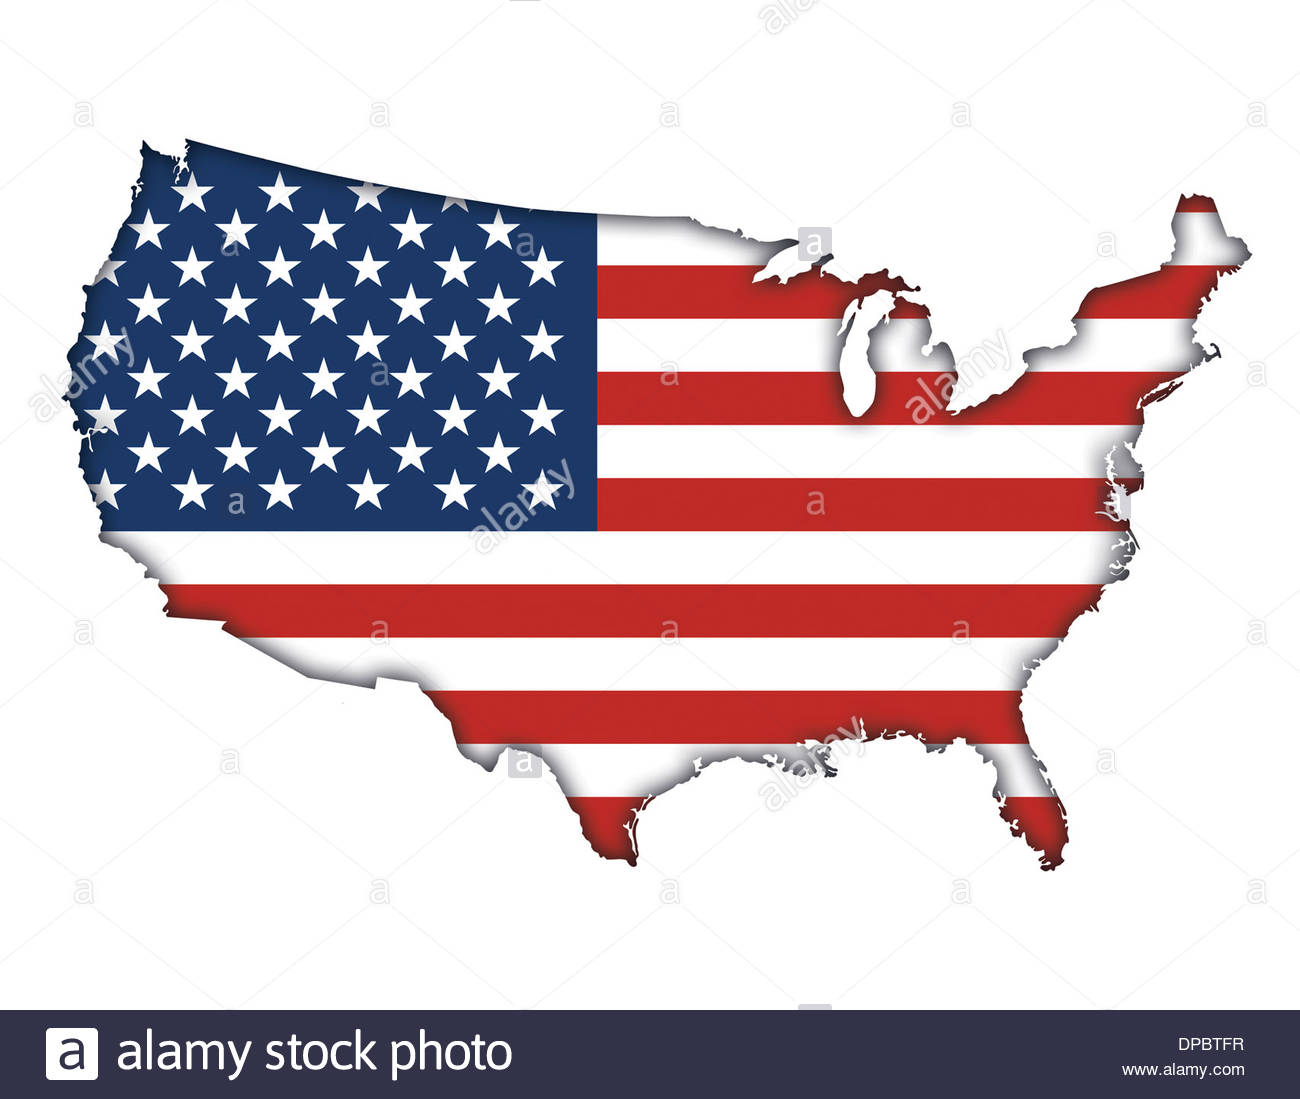 American flag banner map icon logo of USA Stock Photo Royalty